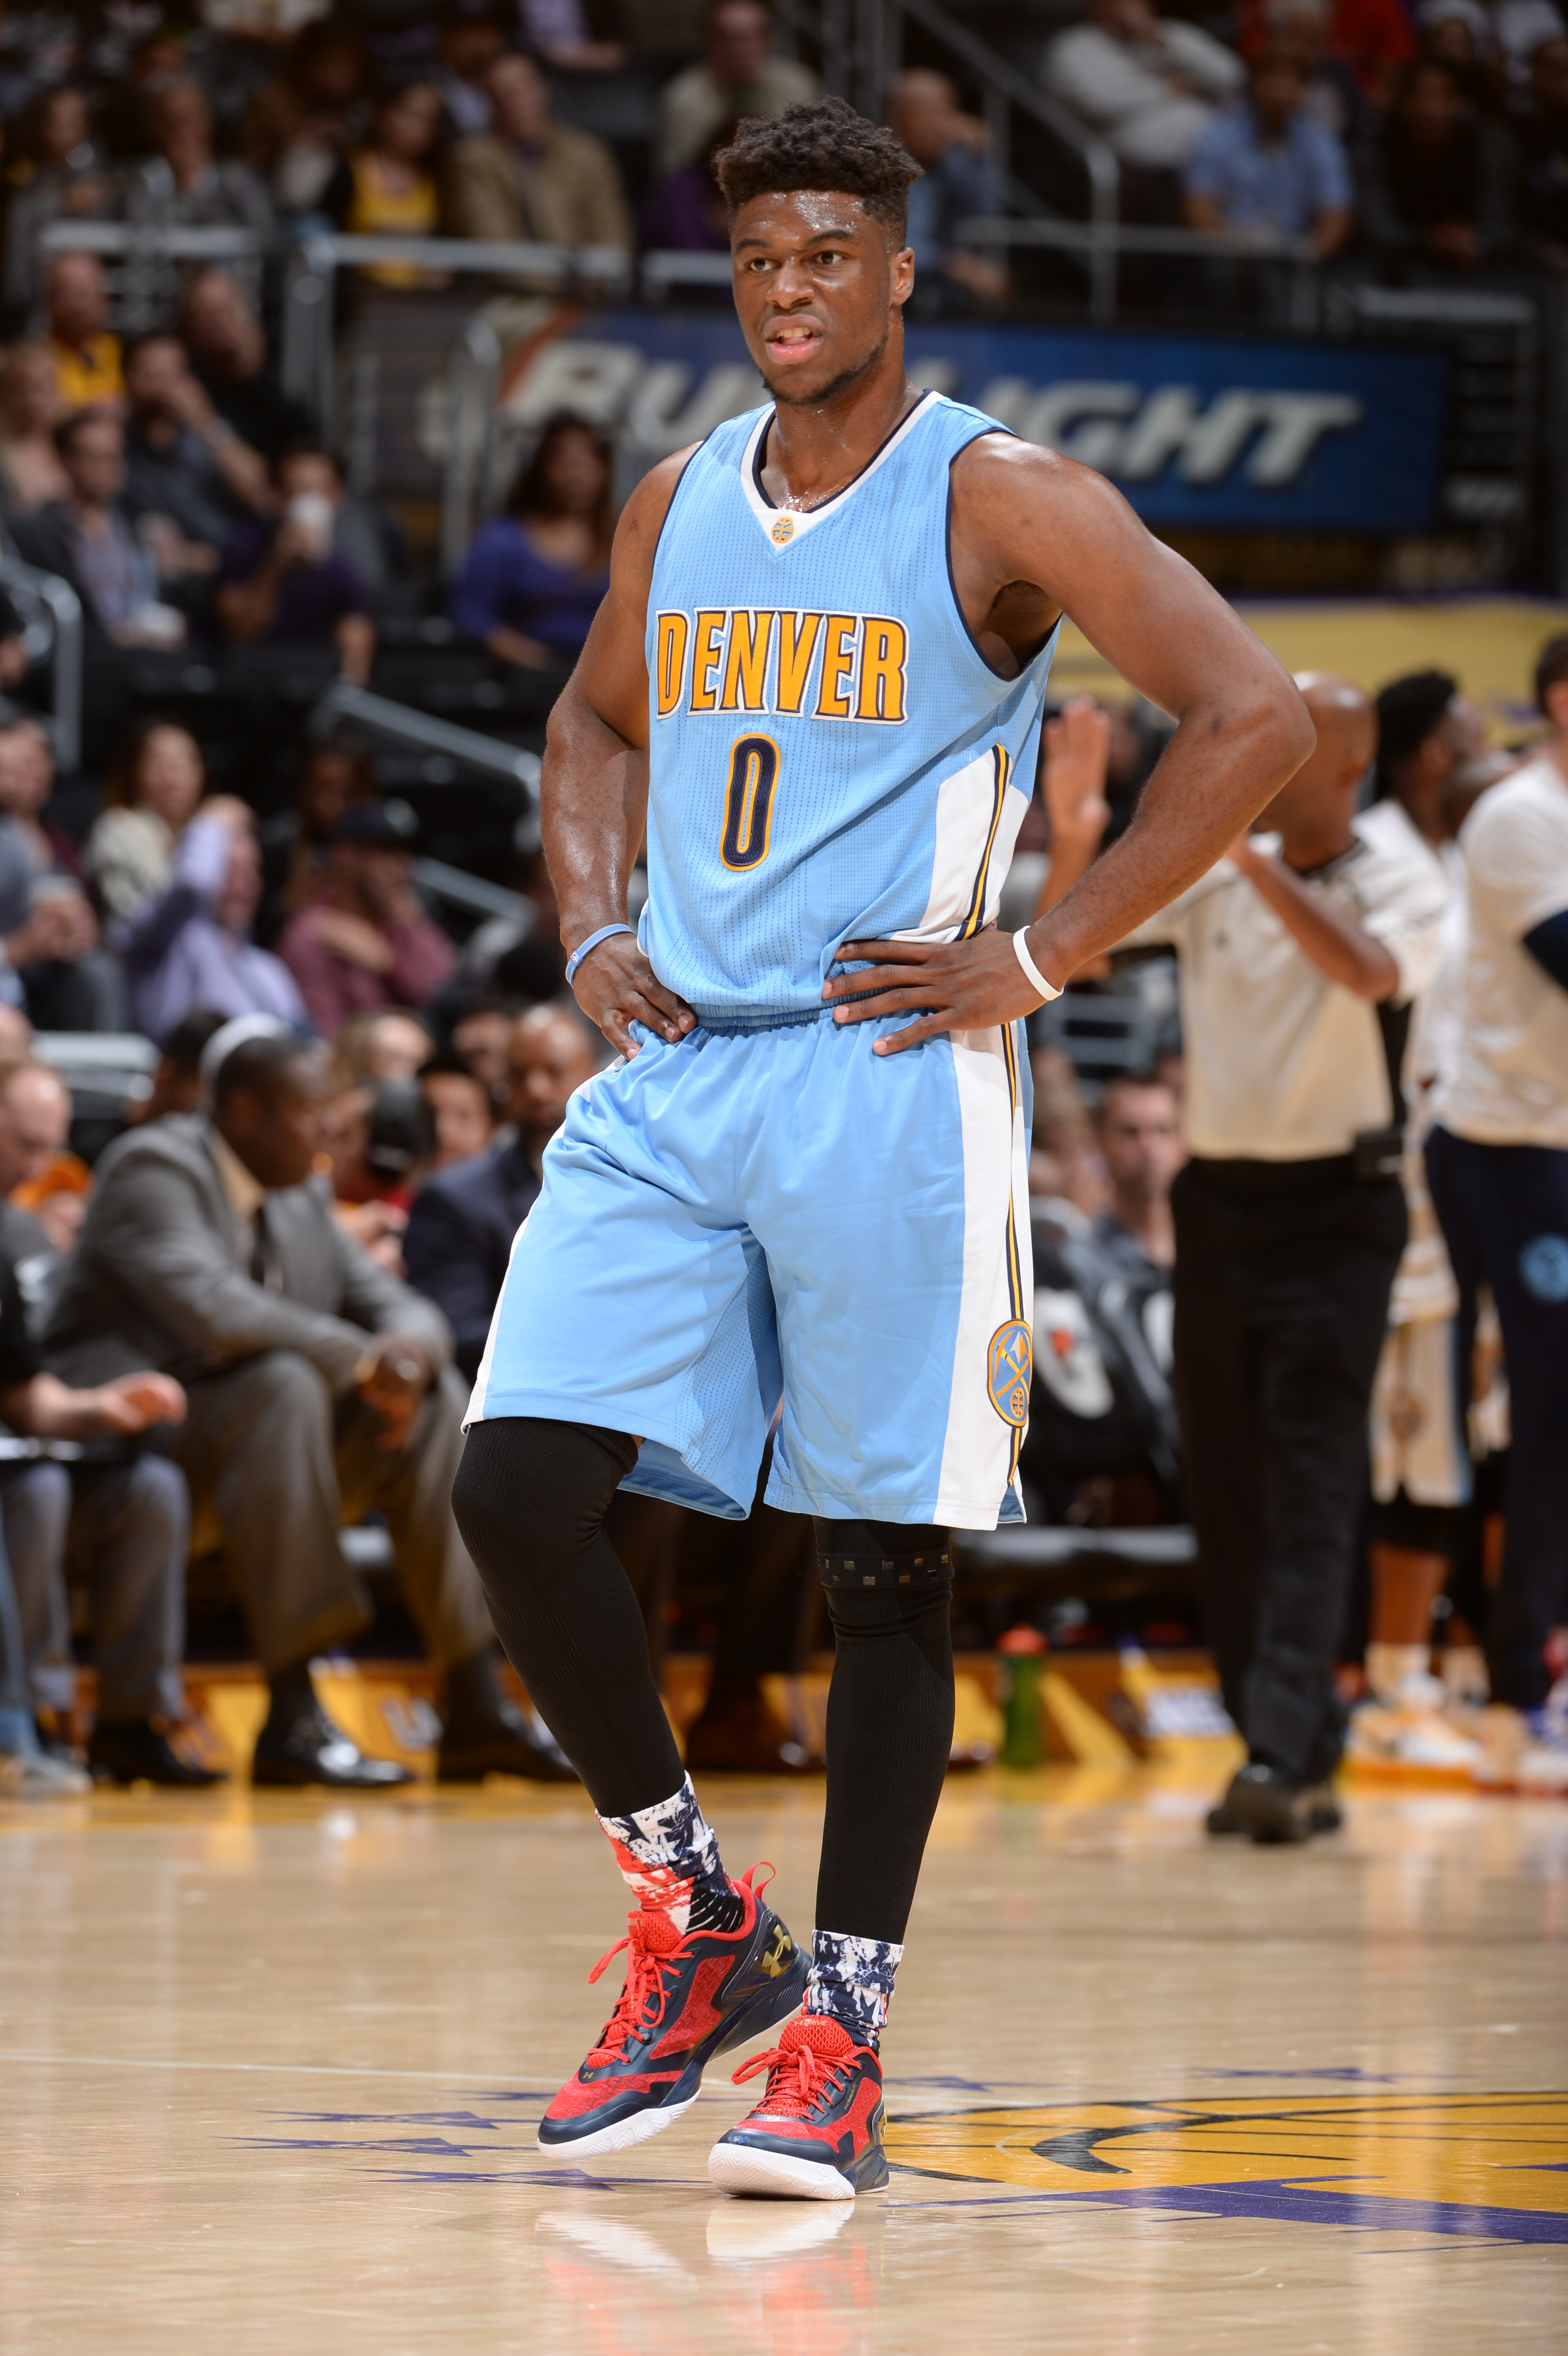 Emmanuel Mudiay #0 of the Denver Nuggets ;llooks on during the game against the Los Angeles Lakers on November 3, 2015 at STAPLES Center in Los Angeles, California. (Photo by Andrew D. Bernstein/NBAE via Getty Images)